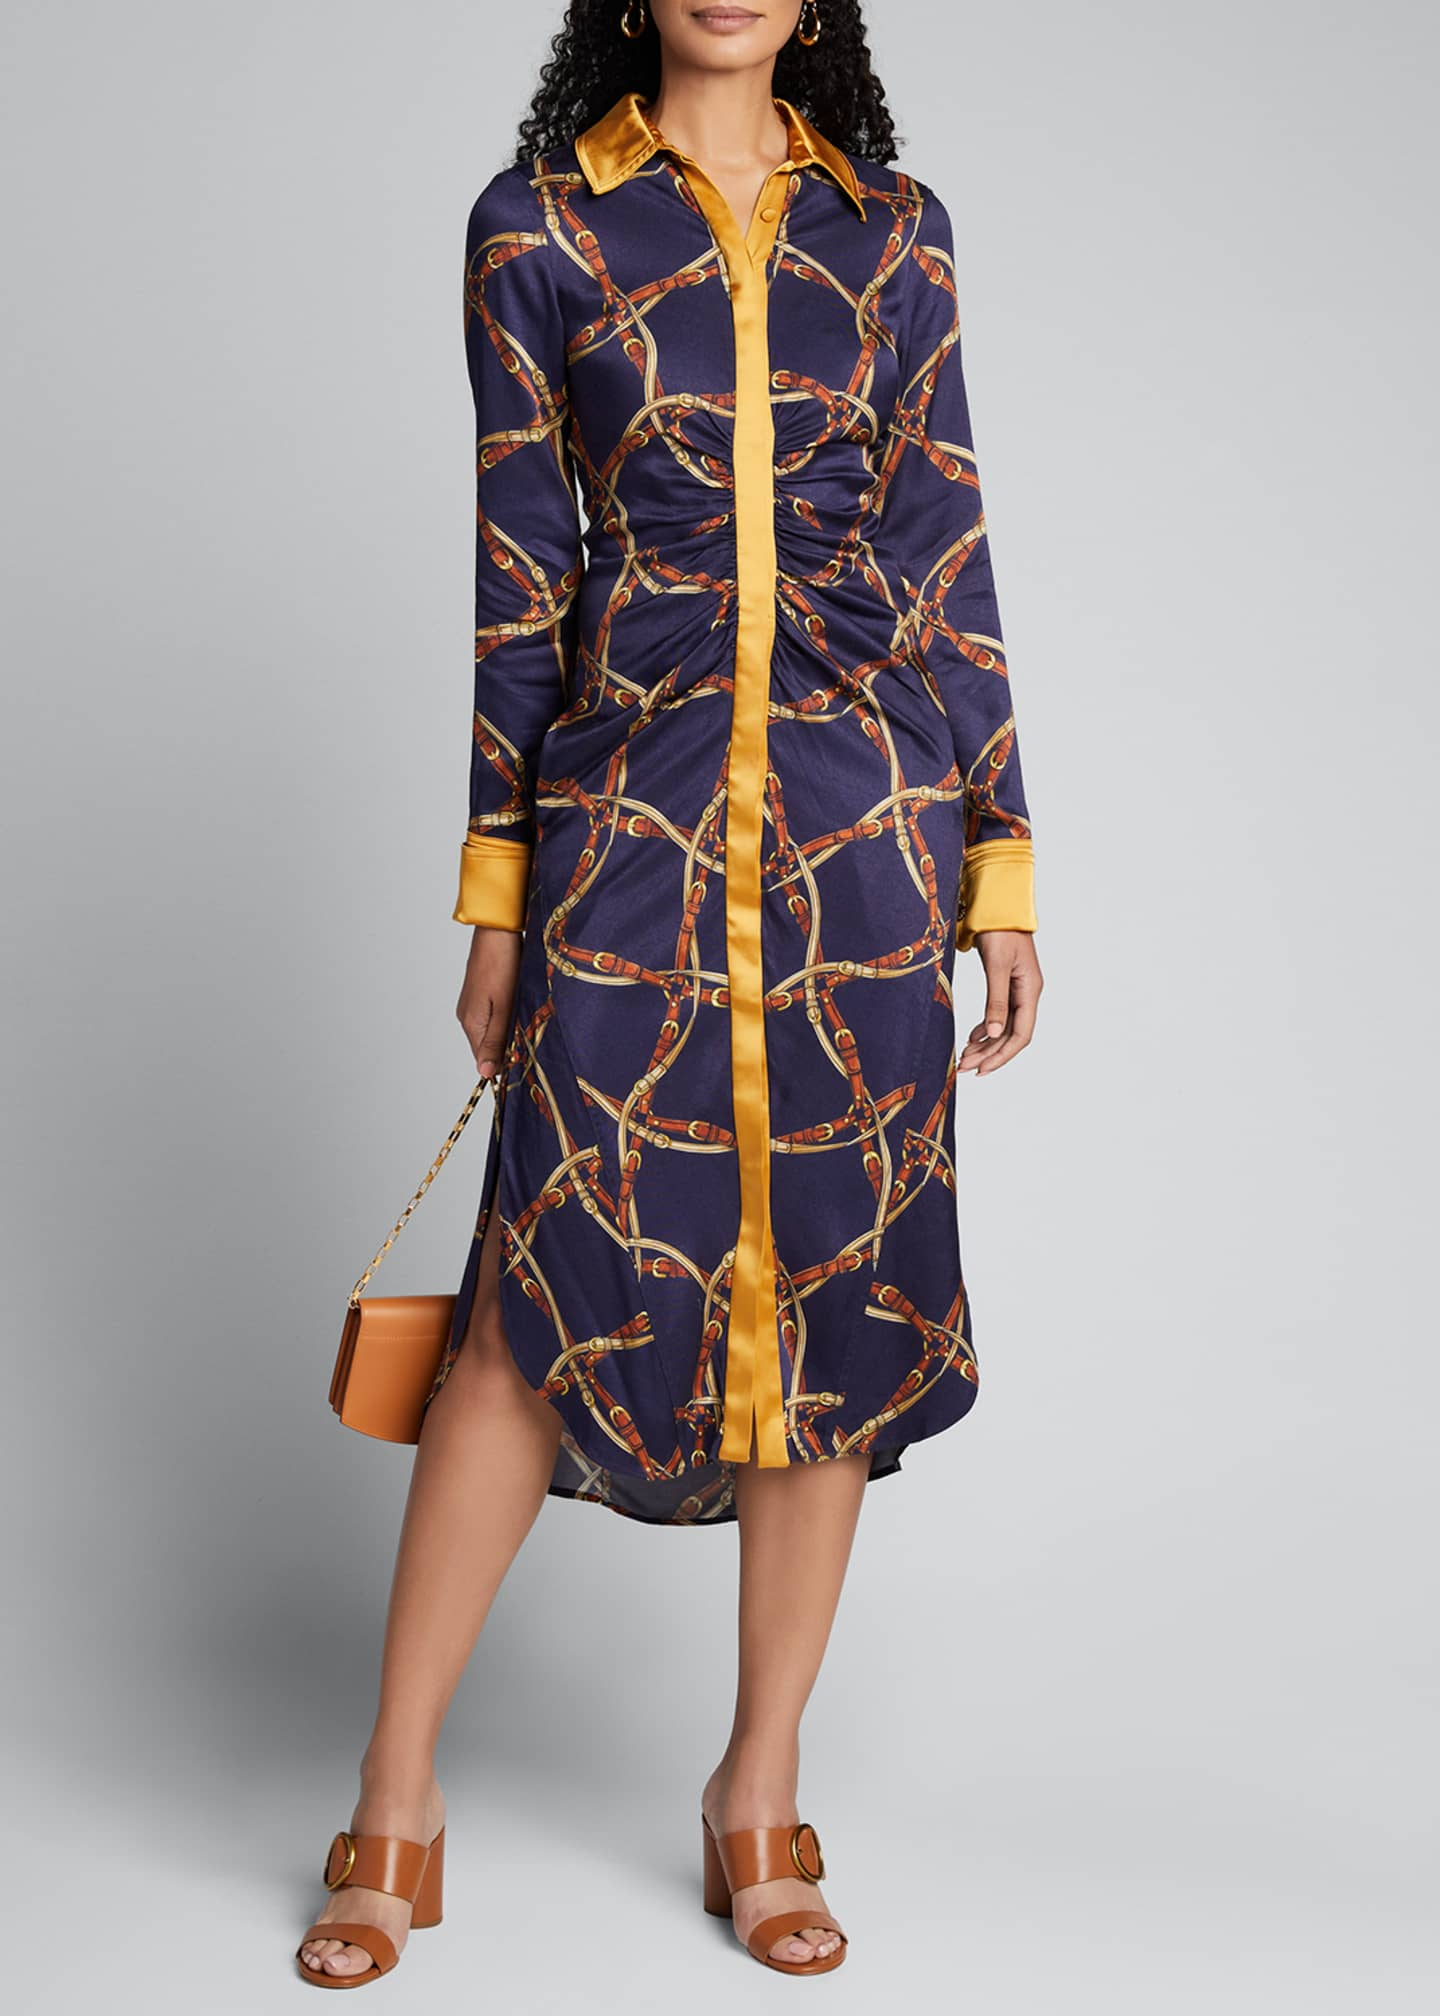 Saddle-Print Ruched Long-Sleeve Shirtdress